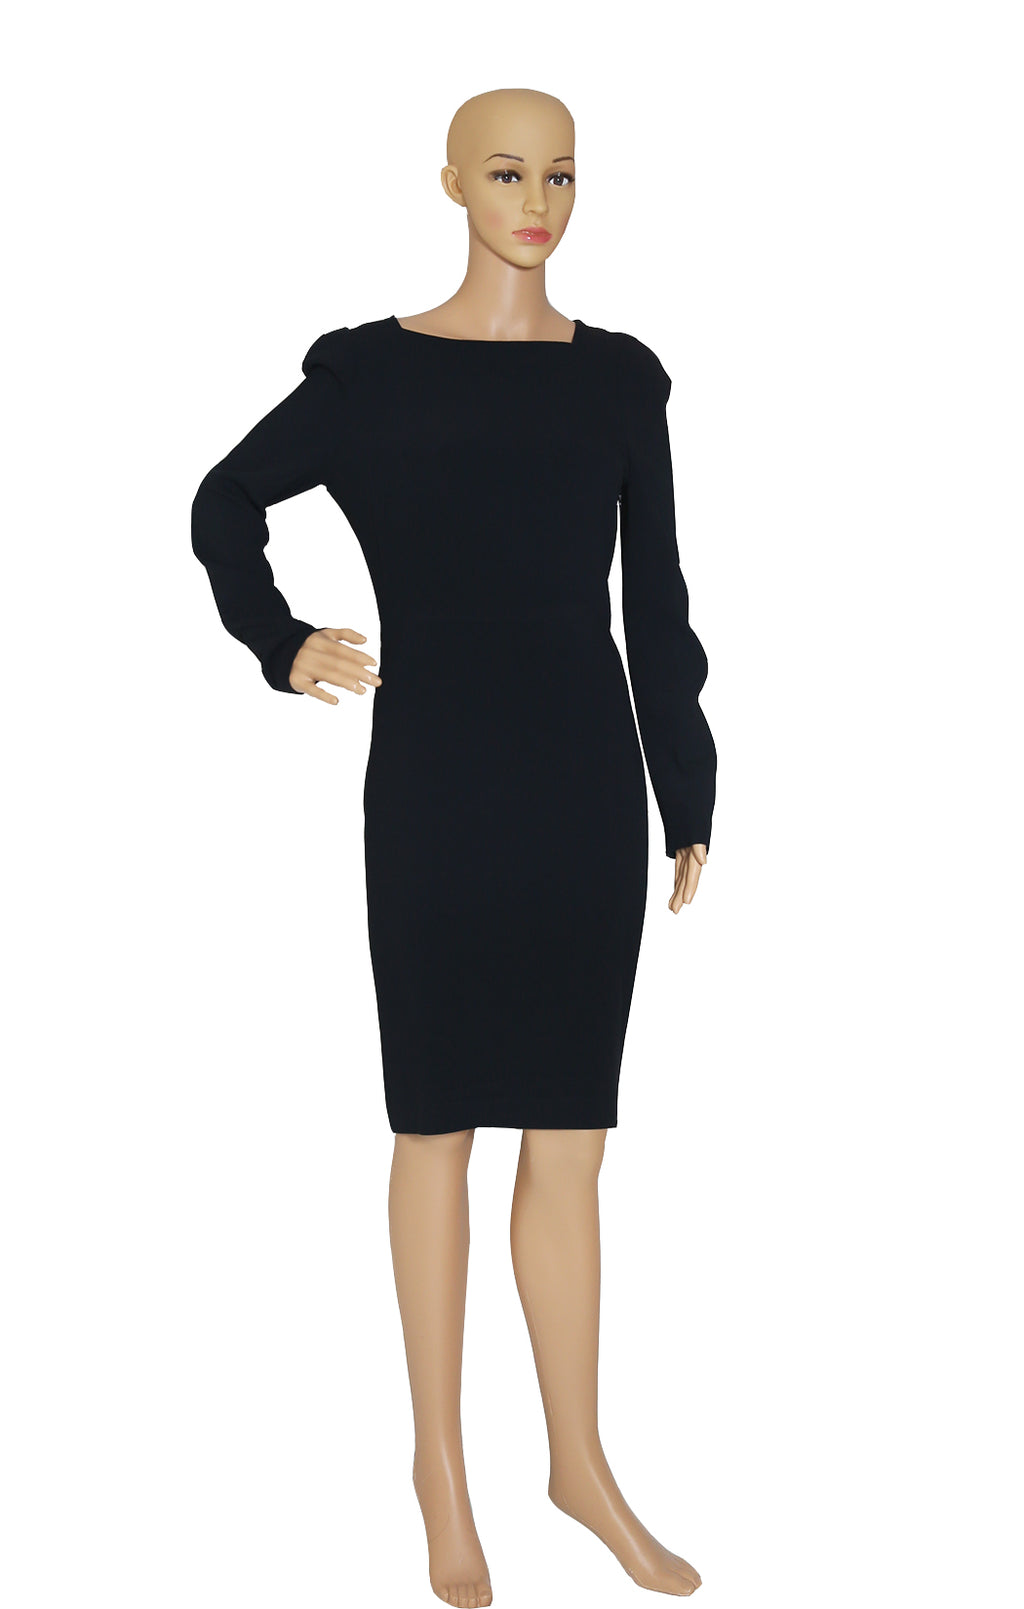 Front view of TOM FORD  Dress Size: No tags, fits like US 8